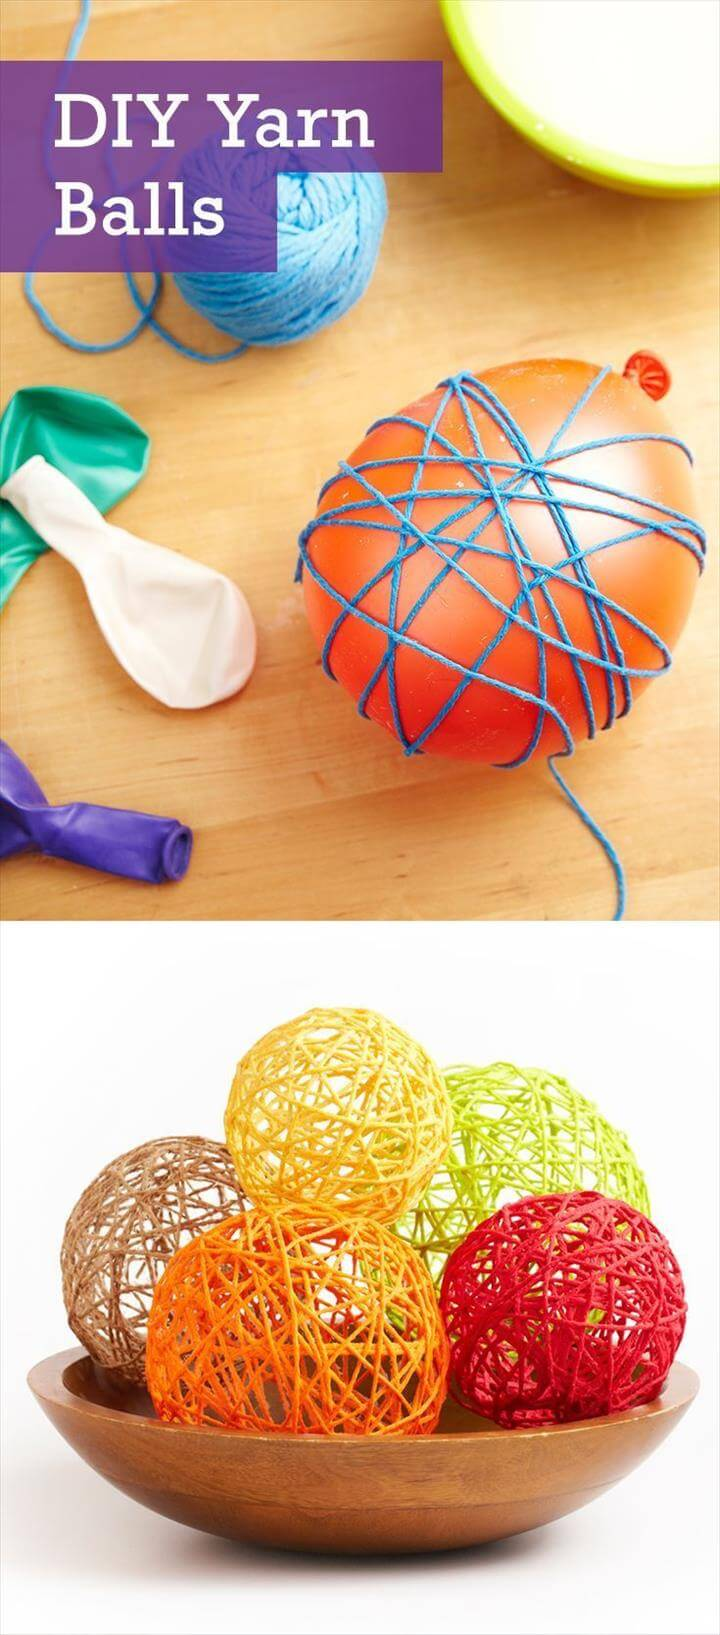 Diy Crafts With Yarn, Yarn Crafts Kids, Diy Yarn Decor, Crafts To Make And Sell Easy, Things To Make With Yarn, Diy Using Yarn, Sell Diy, Diy Crafts Home, Diy Crafts Cheap